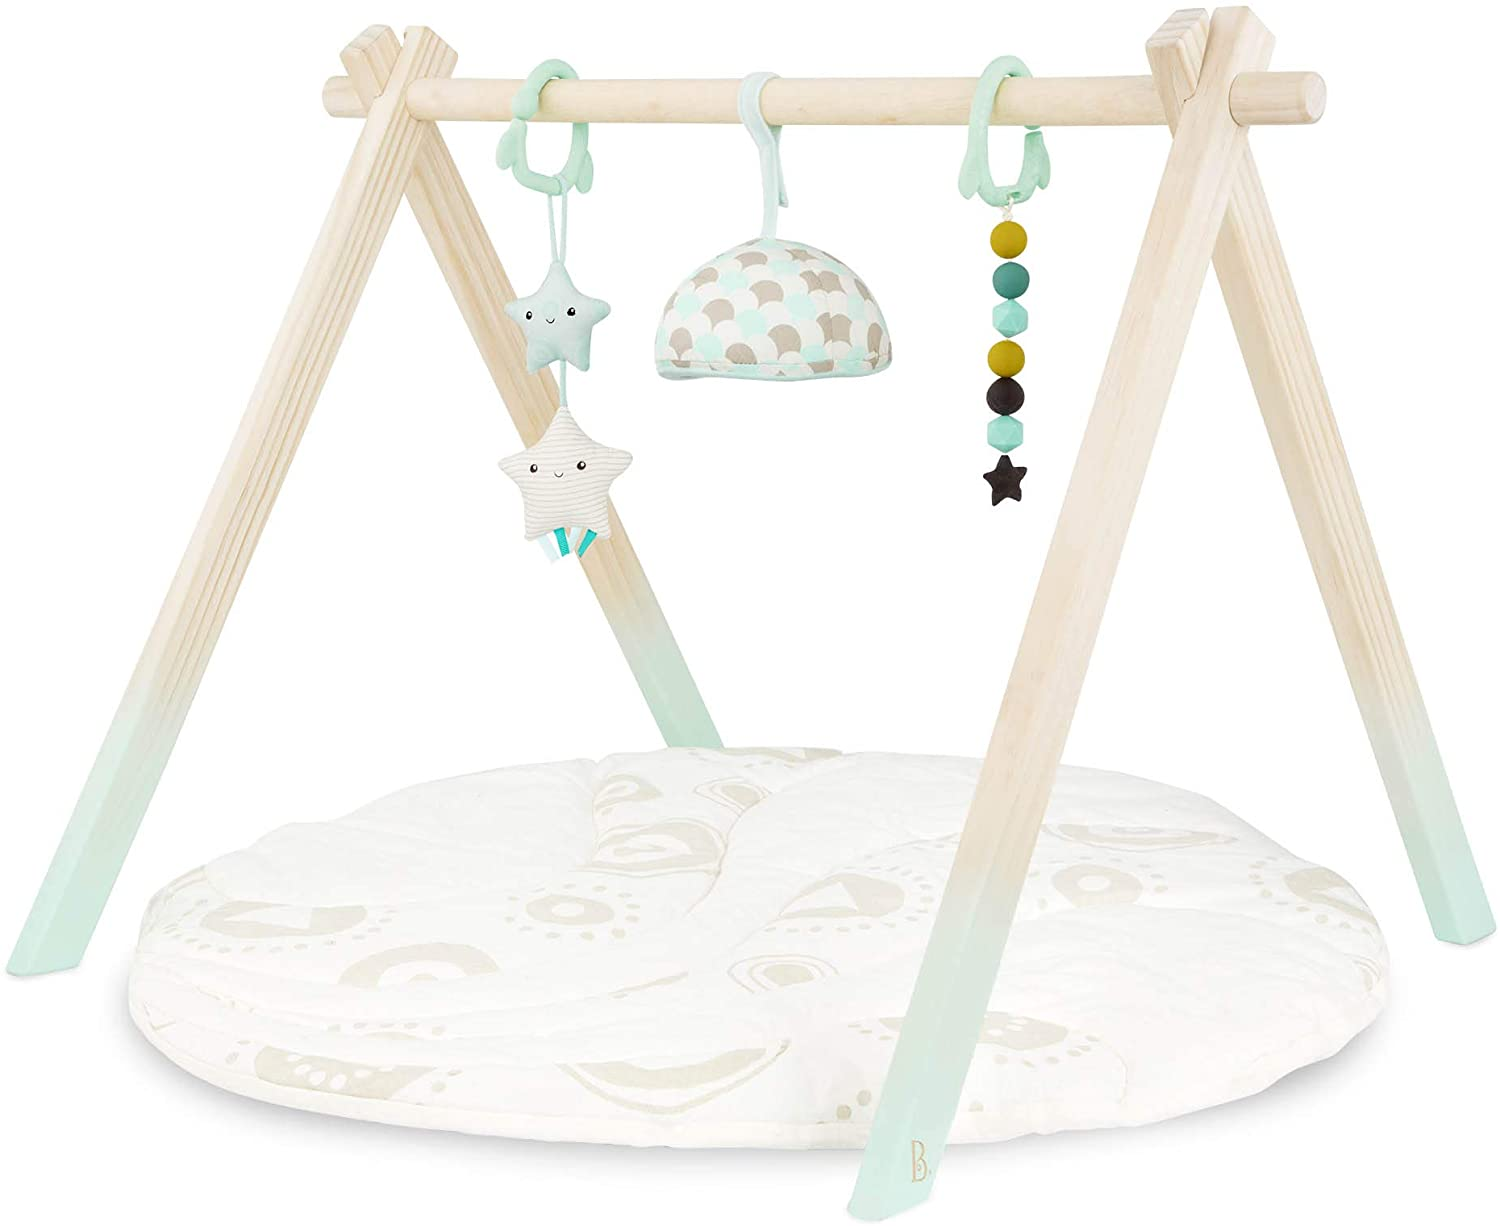 B. Toys Wooden Baby Play Gym Activity Mat Starry Sky 3 Hanging Sensory Toys Organic Cotton Natural Wood Babies, Infants